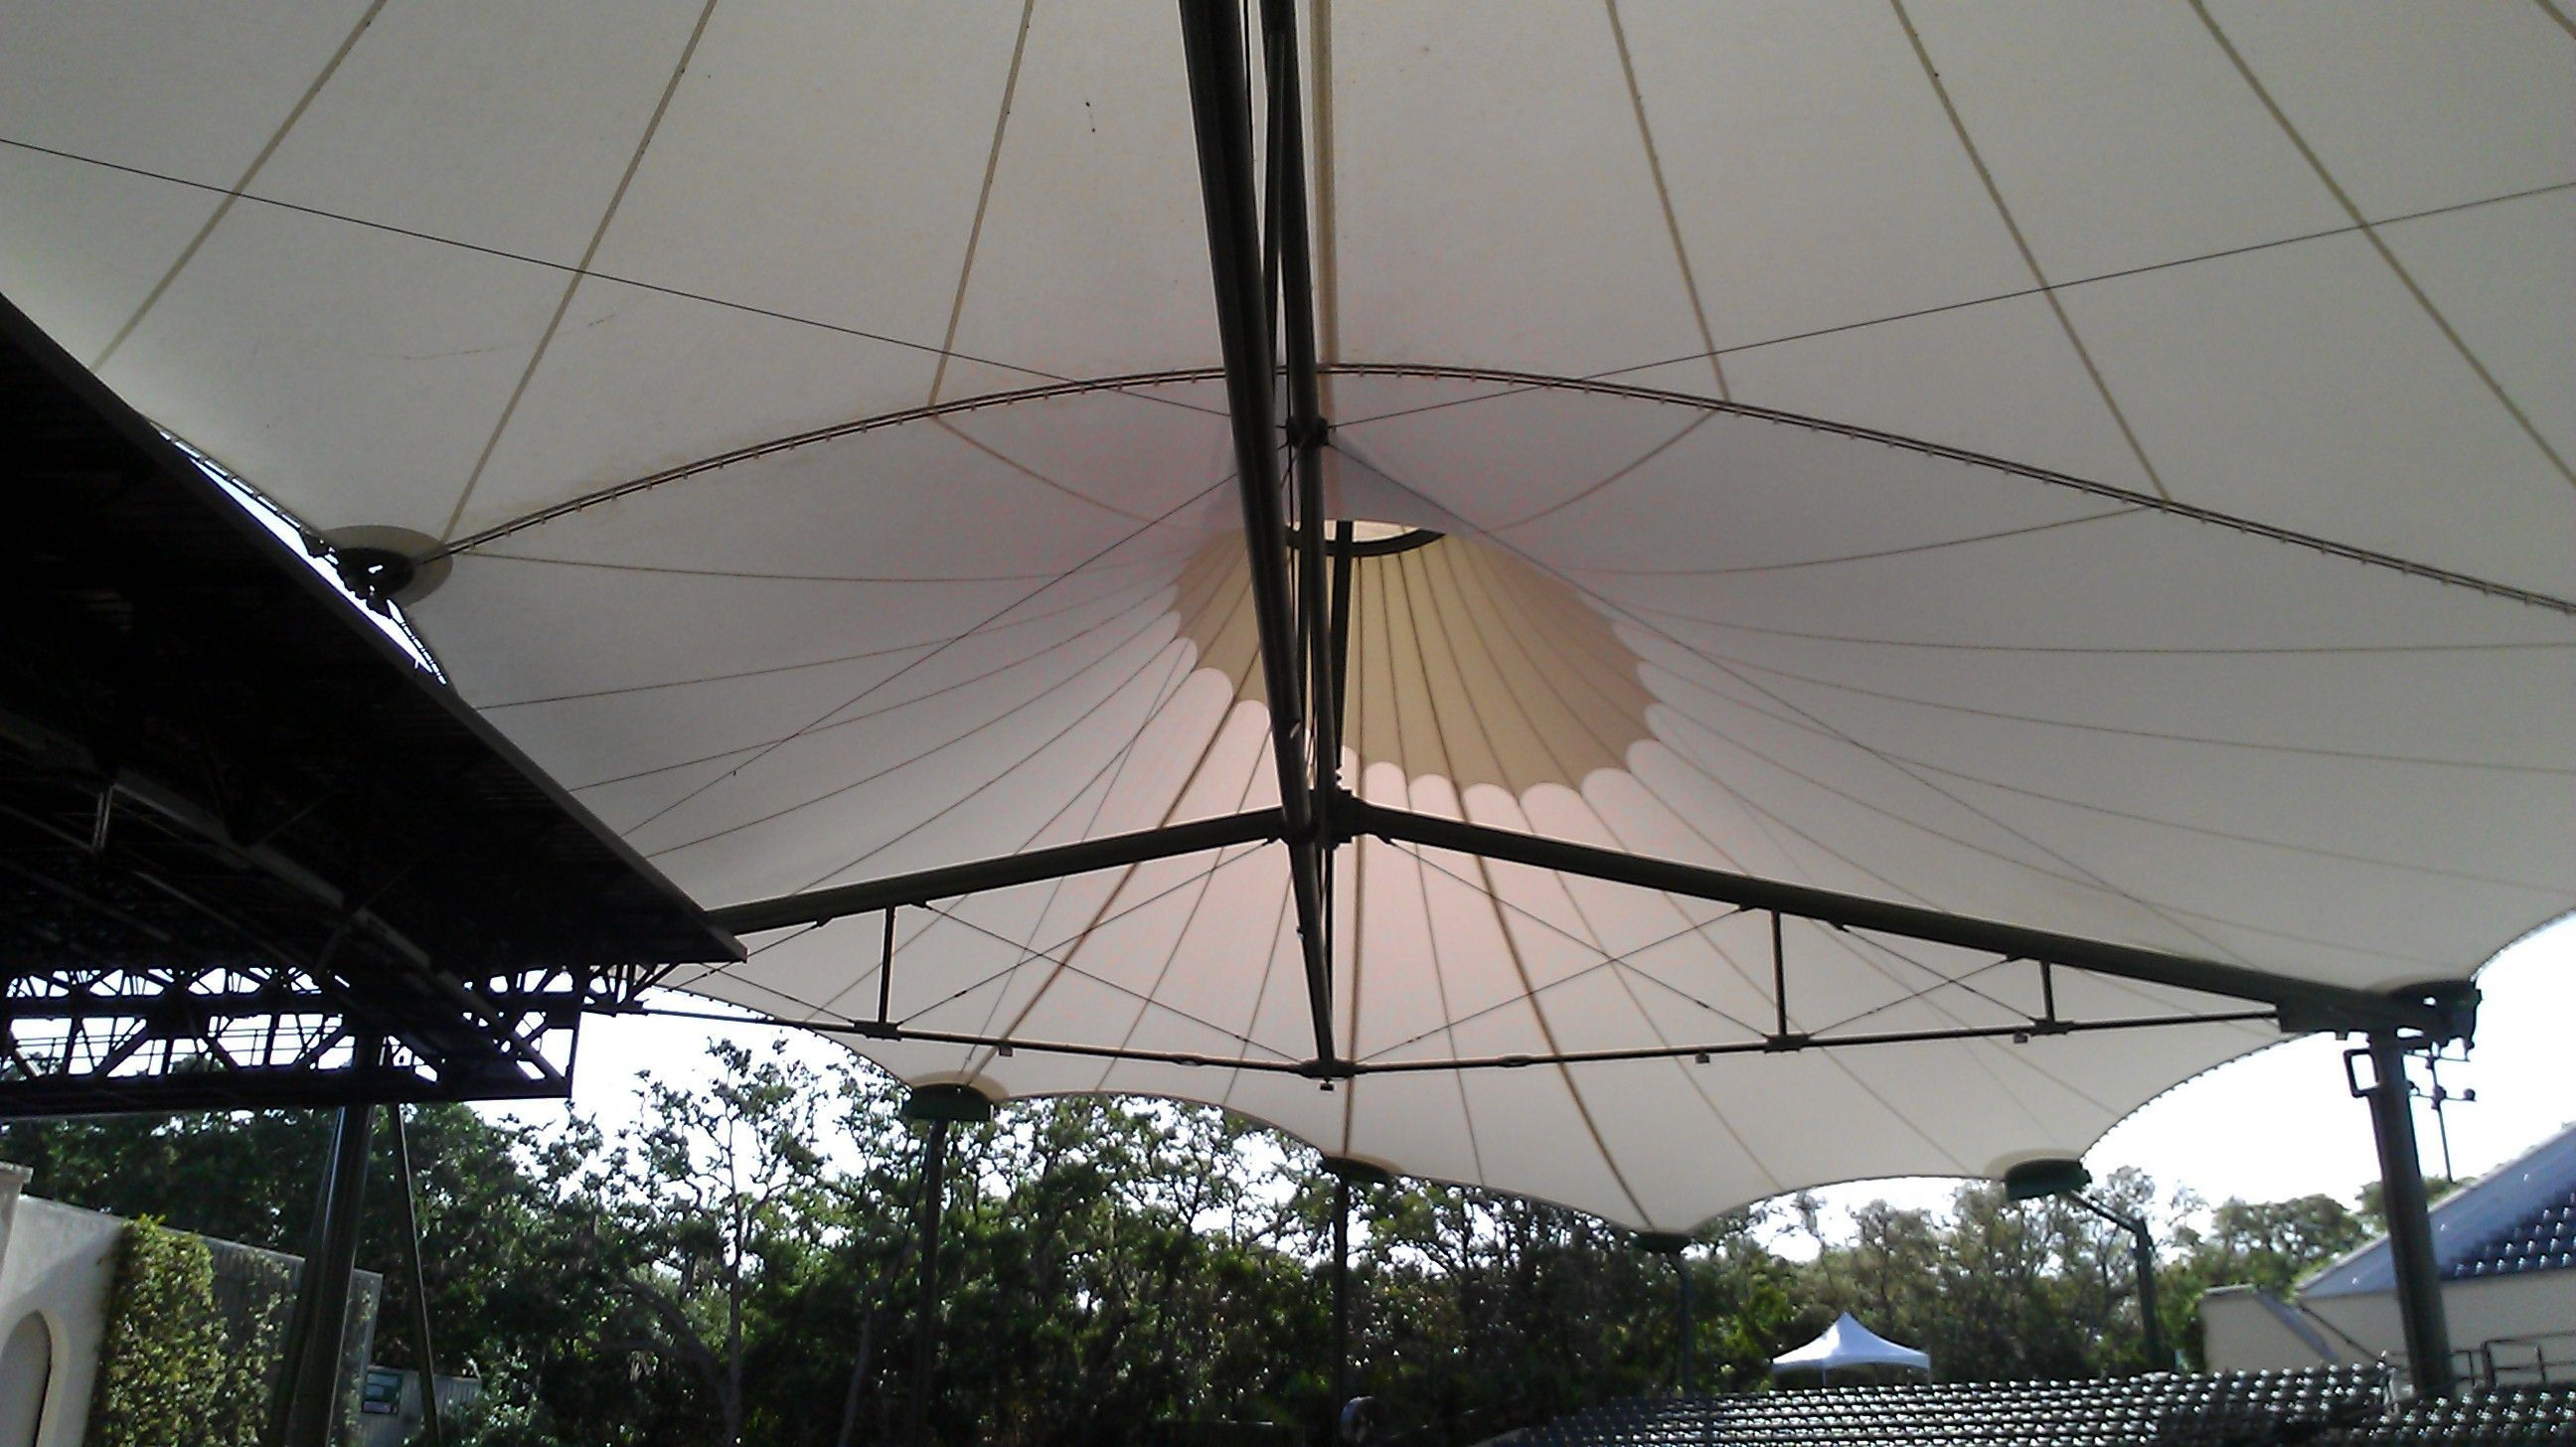 The large umbrella roof protects concert goers from the elements. #largeumbrella The large umbrella roof protects concert goers from the elements. #largeumbrella